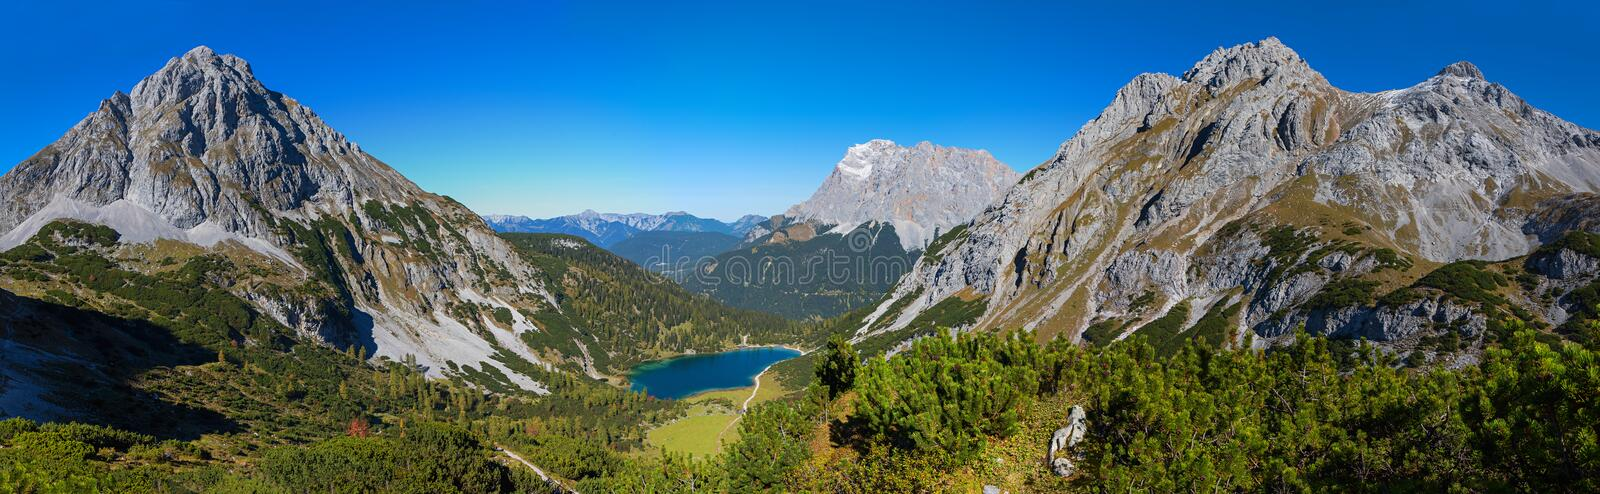 Breathtaking view from the hiking trail to alpine landscape with seebensee and zugspitze mountain royalty free stock photo